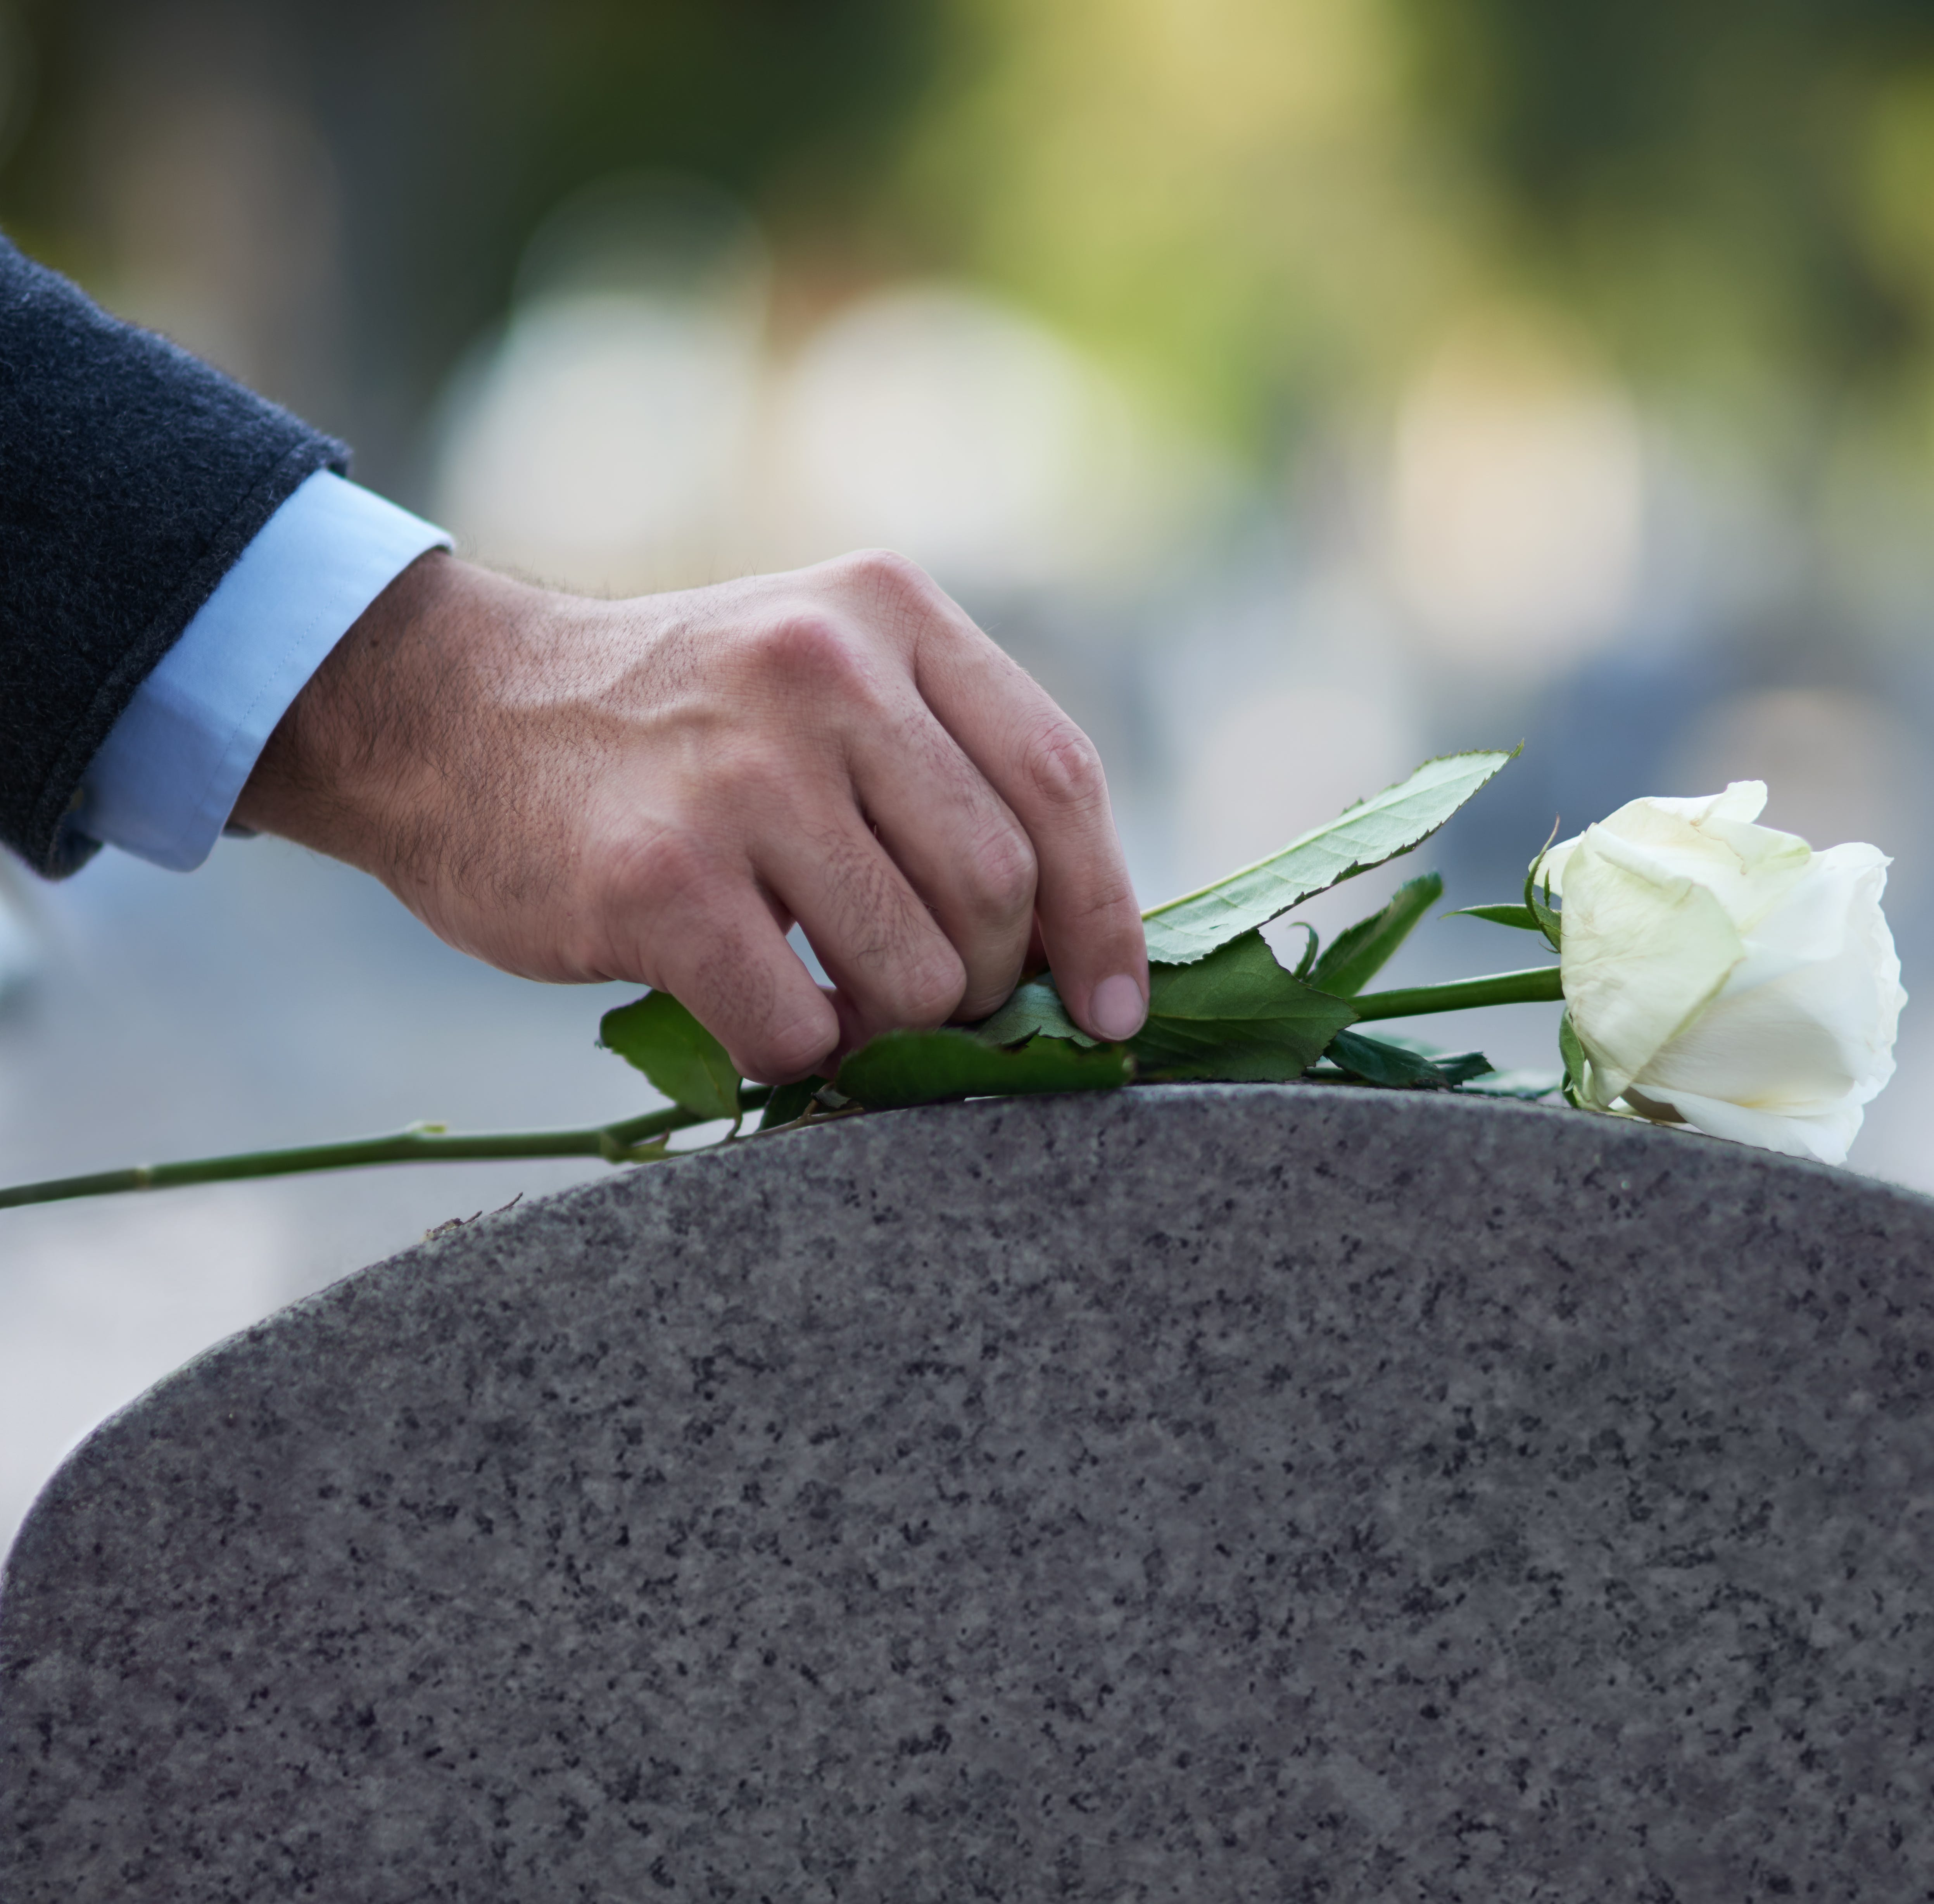 Dealing with grief through bereavement leave.